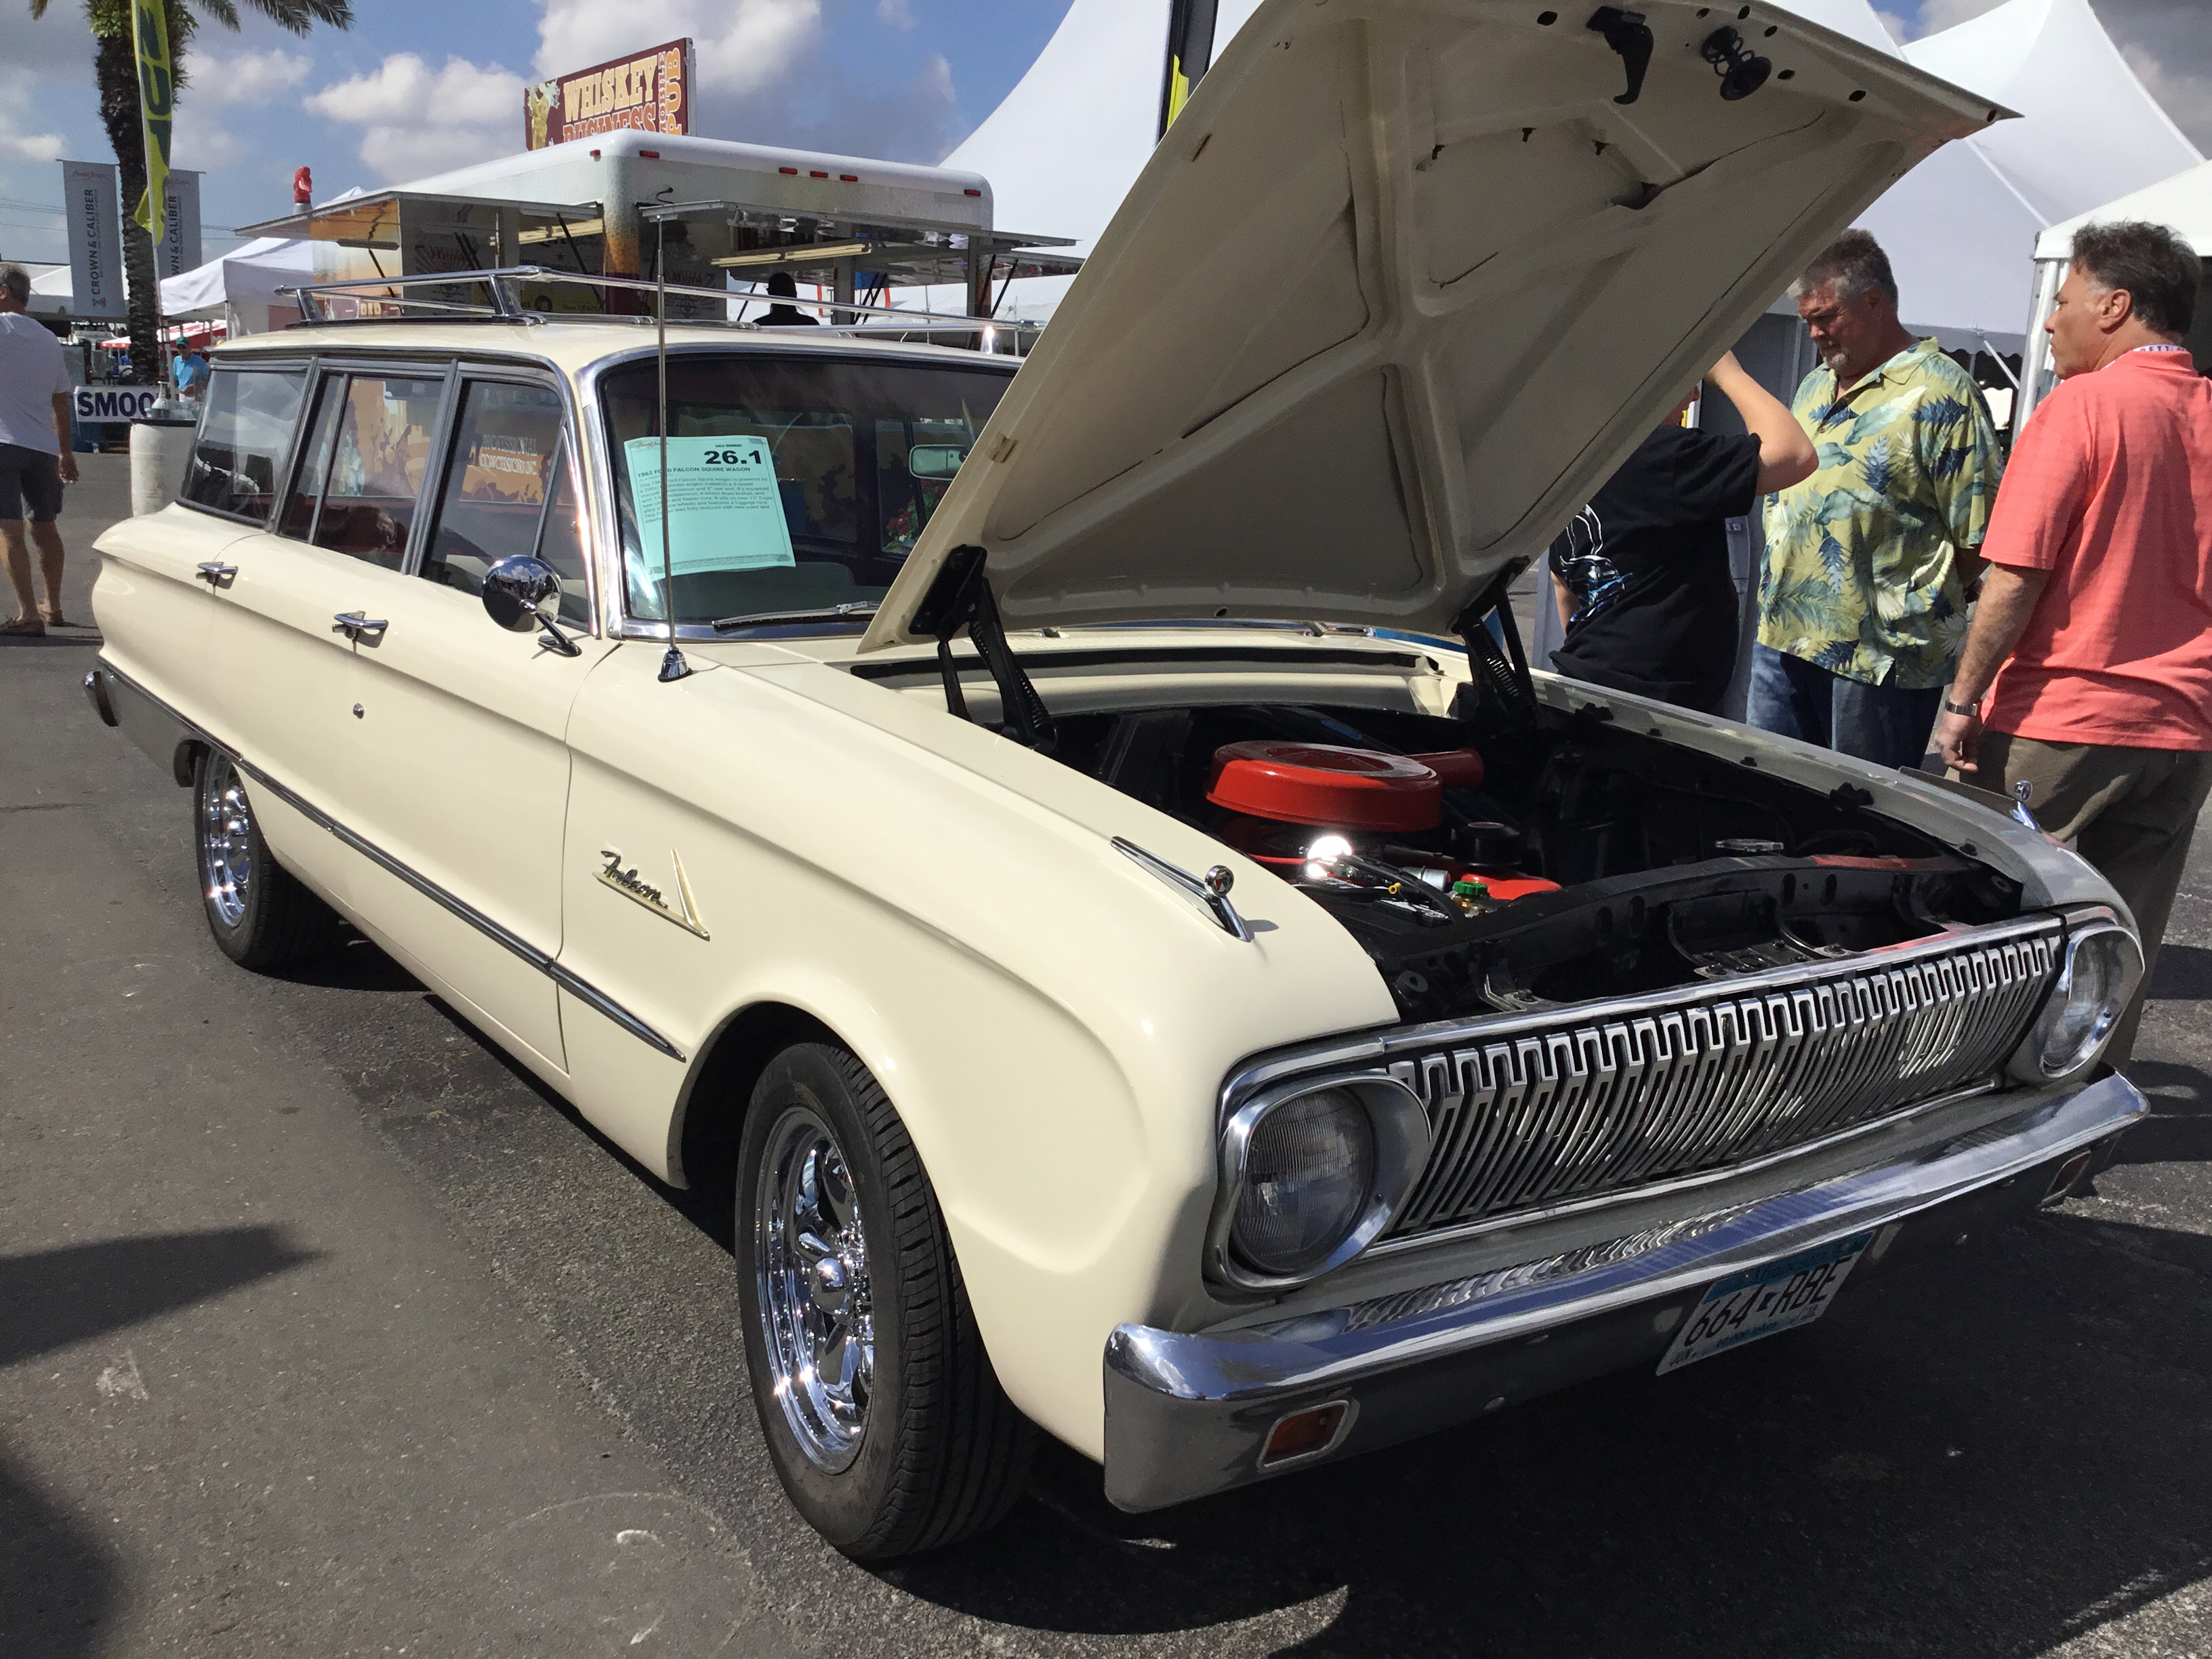 1960 Ford Falcon Values | Hagerty Valuation Tool®